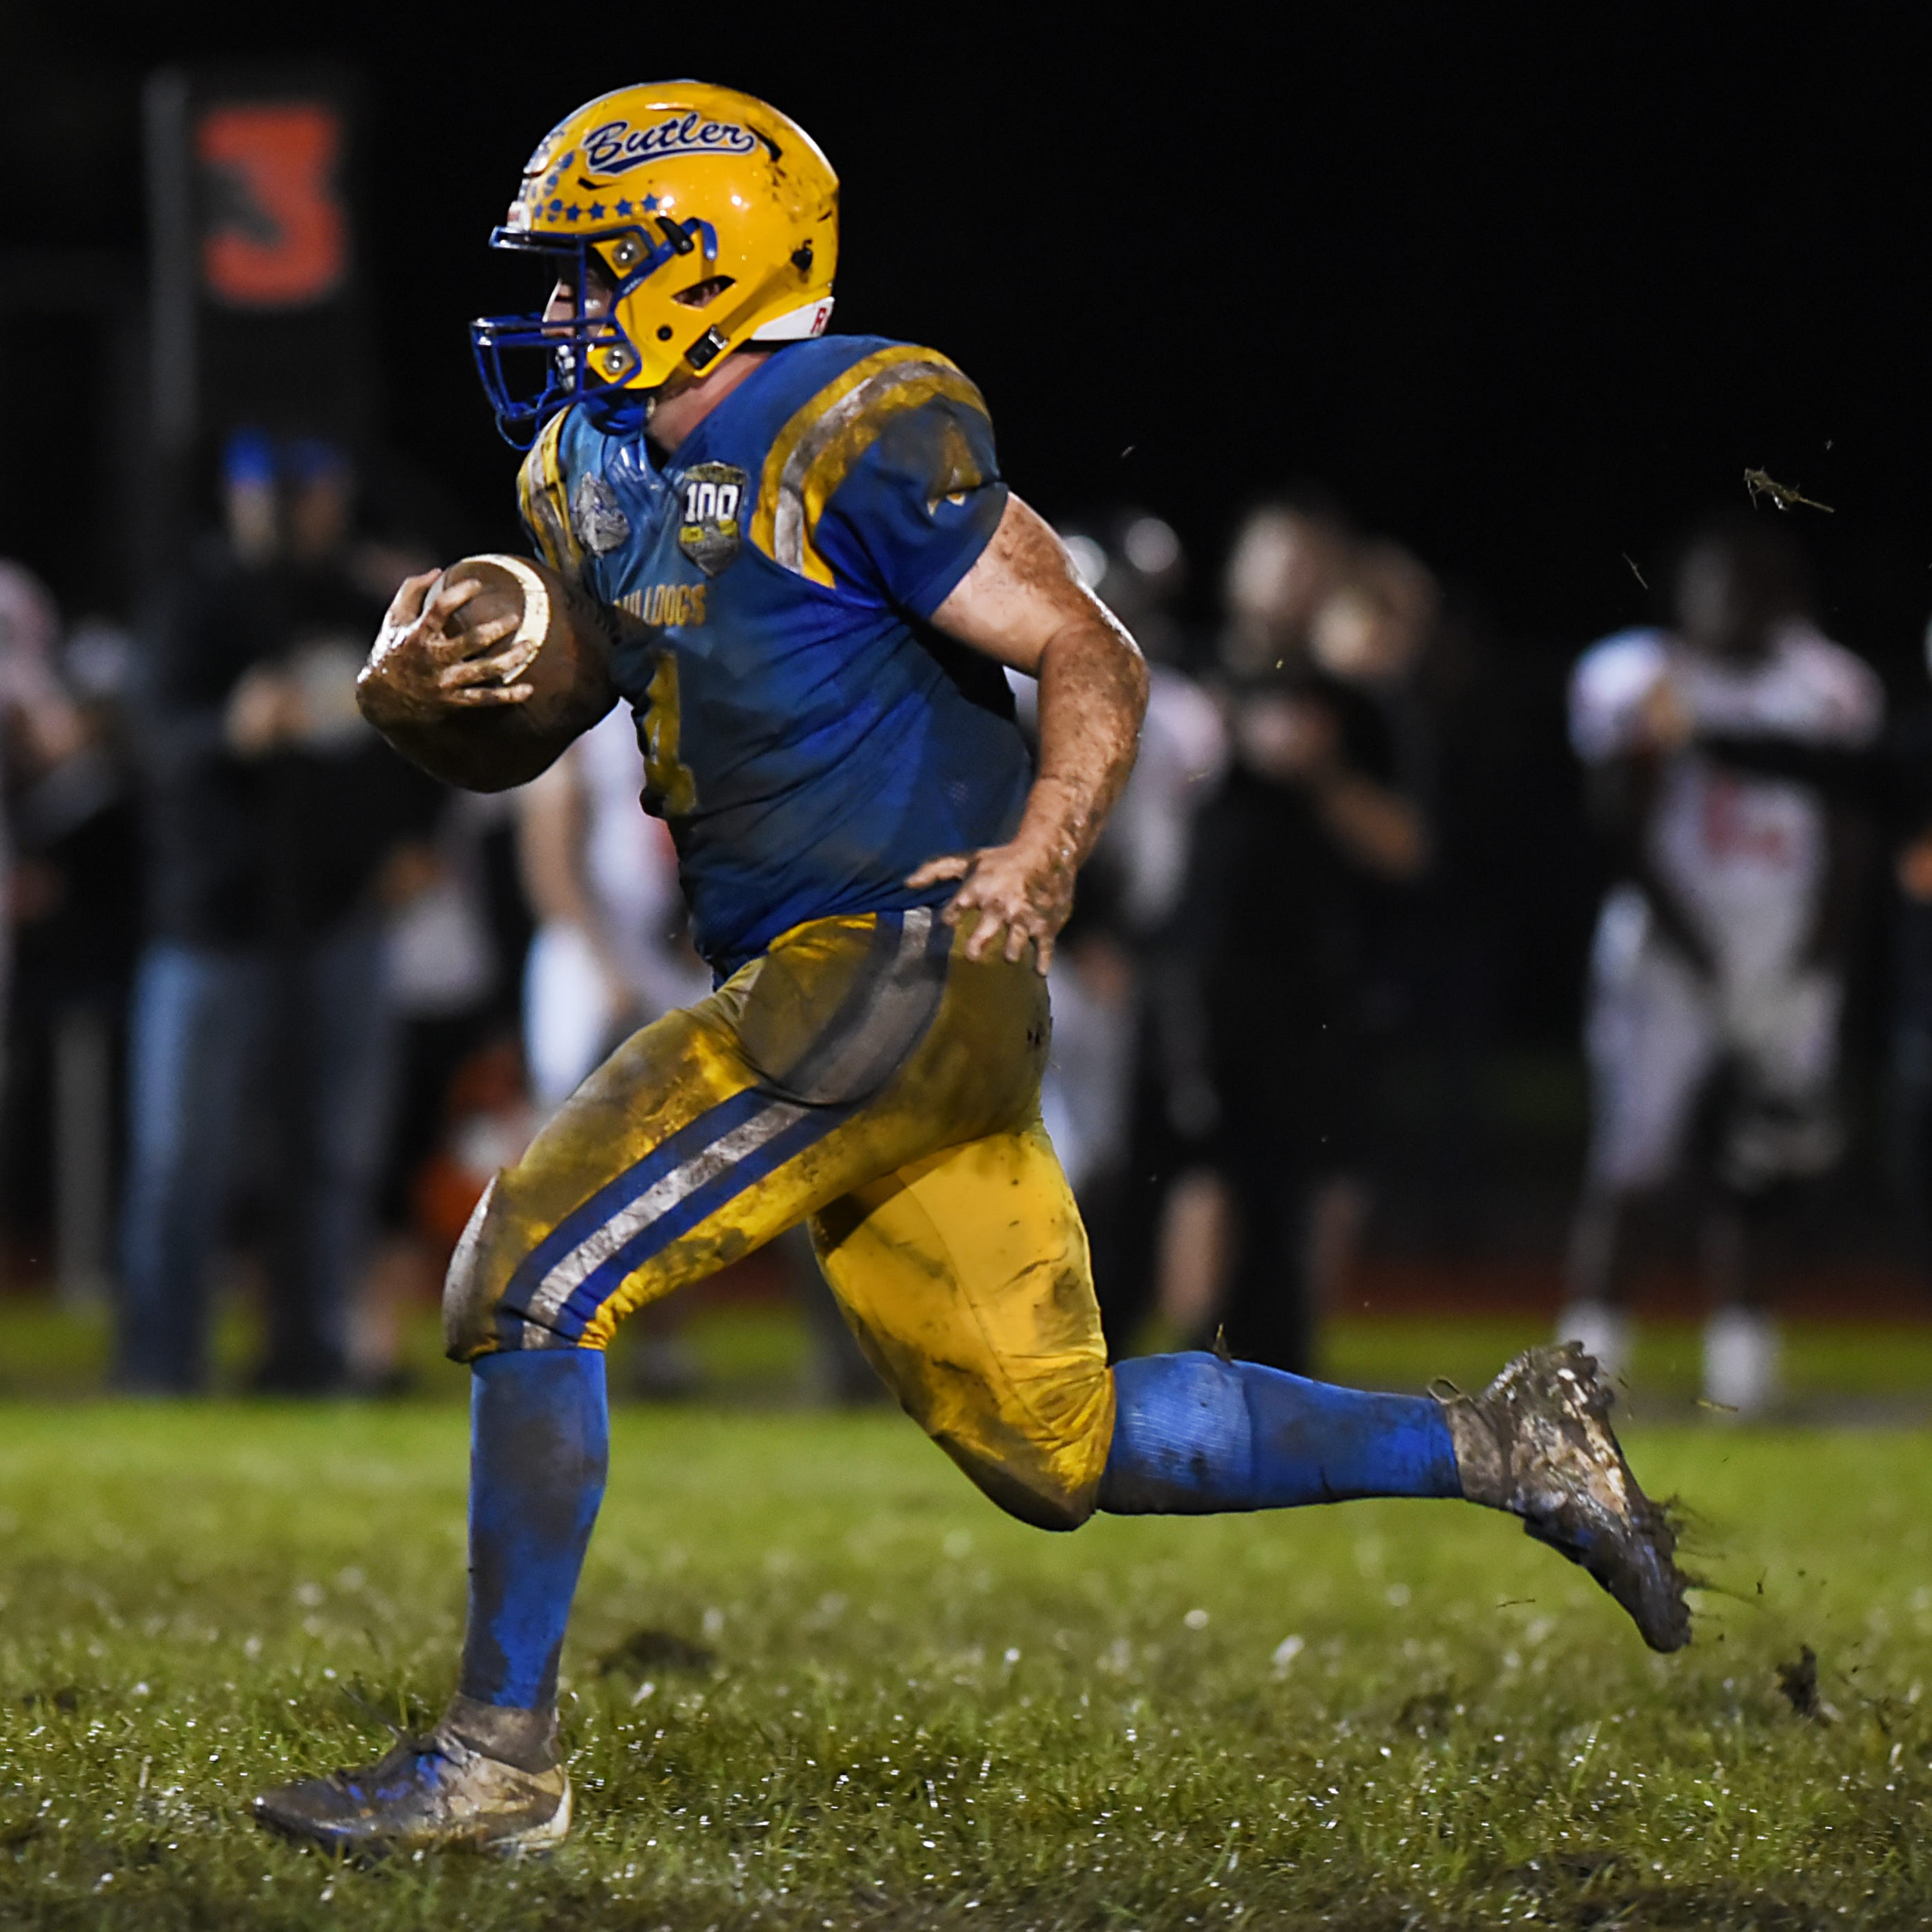 Excitement building as Butler football team goes for sectional title